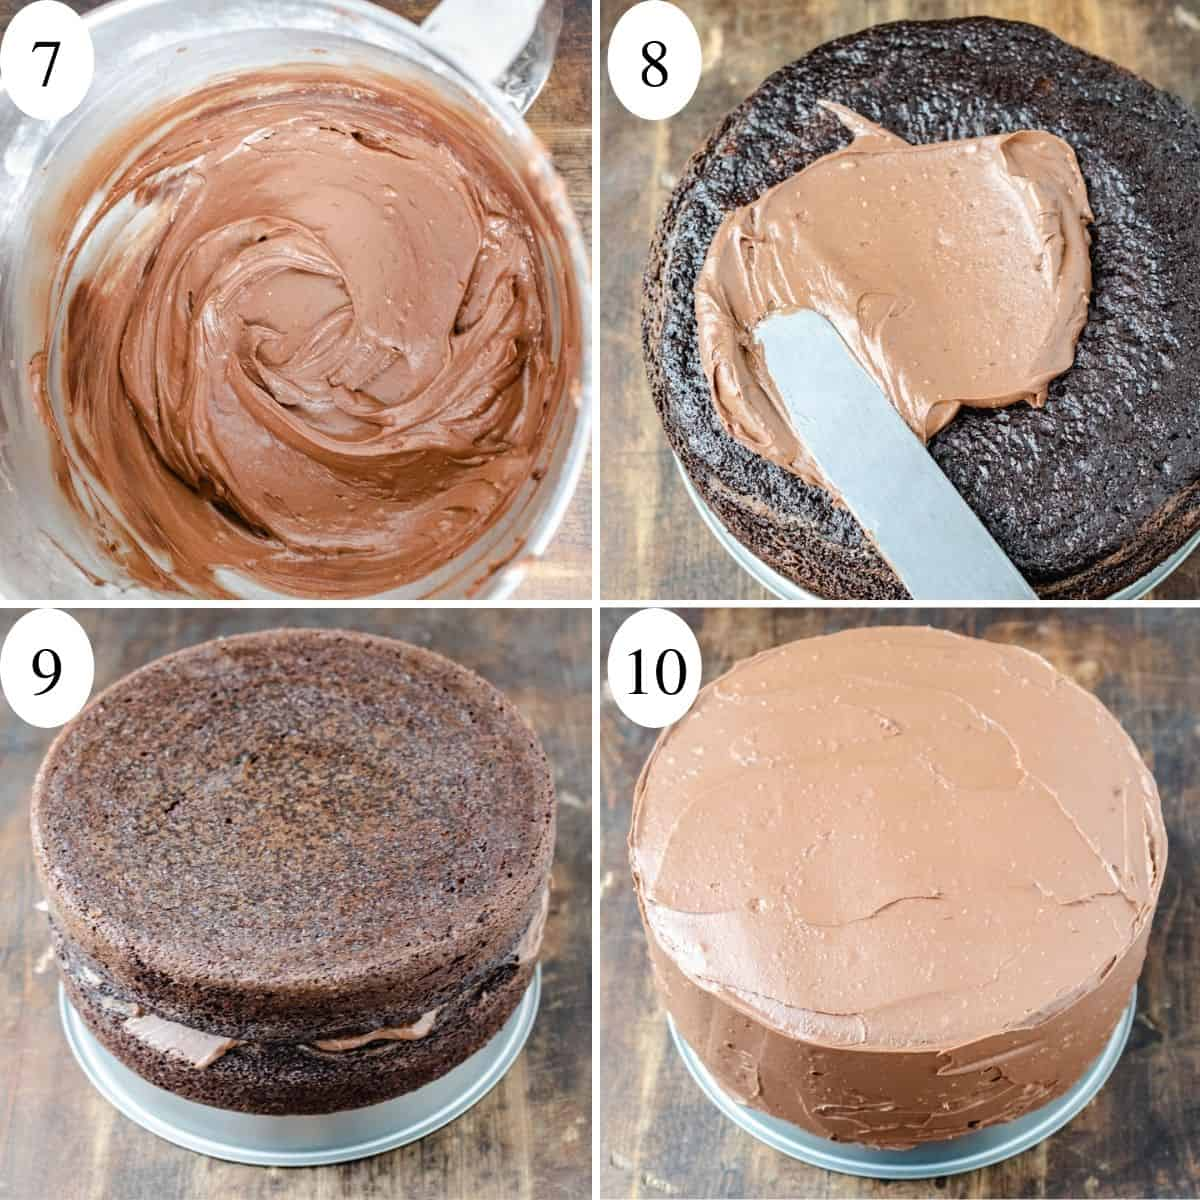 4 images showing the steps to frosting a two layer round cake.